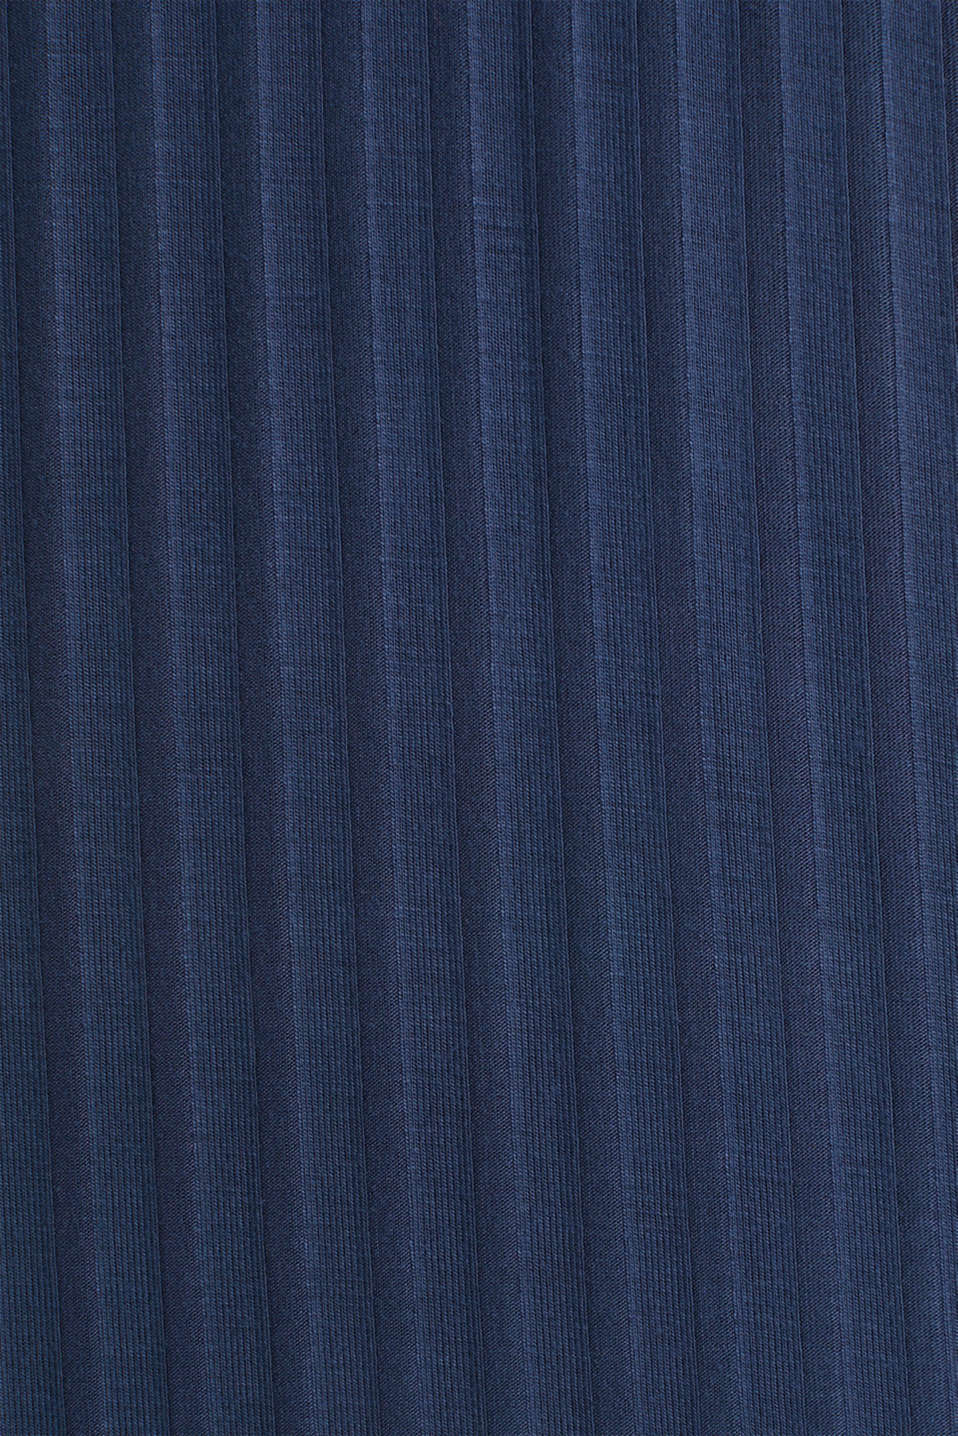 Jersey nightshirt with a ribbed texture, NAVY 2, detail image number 4